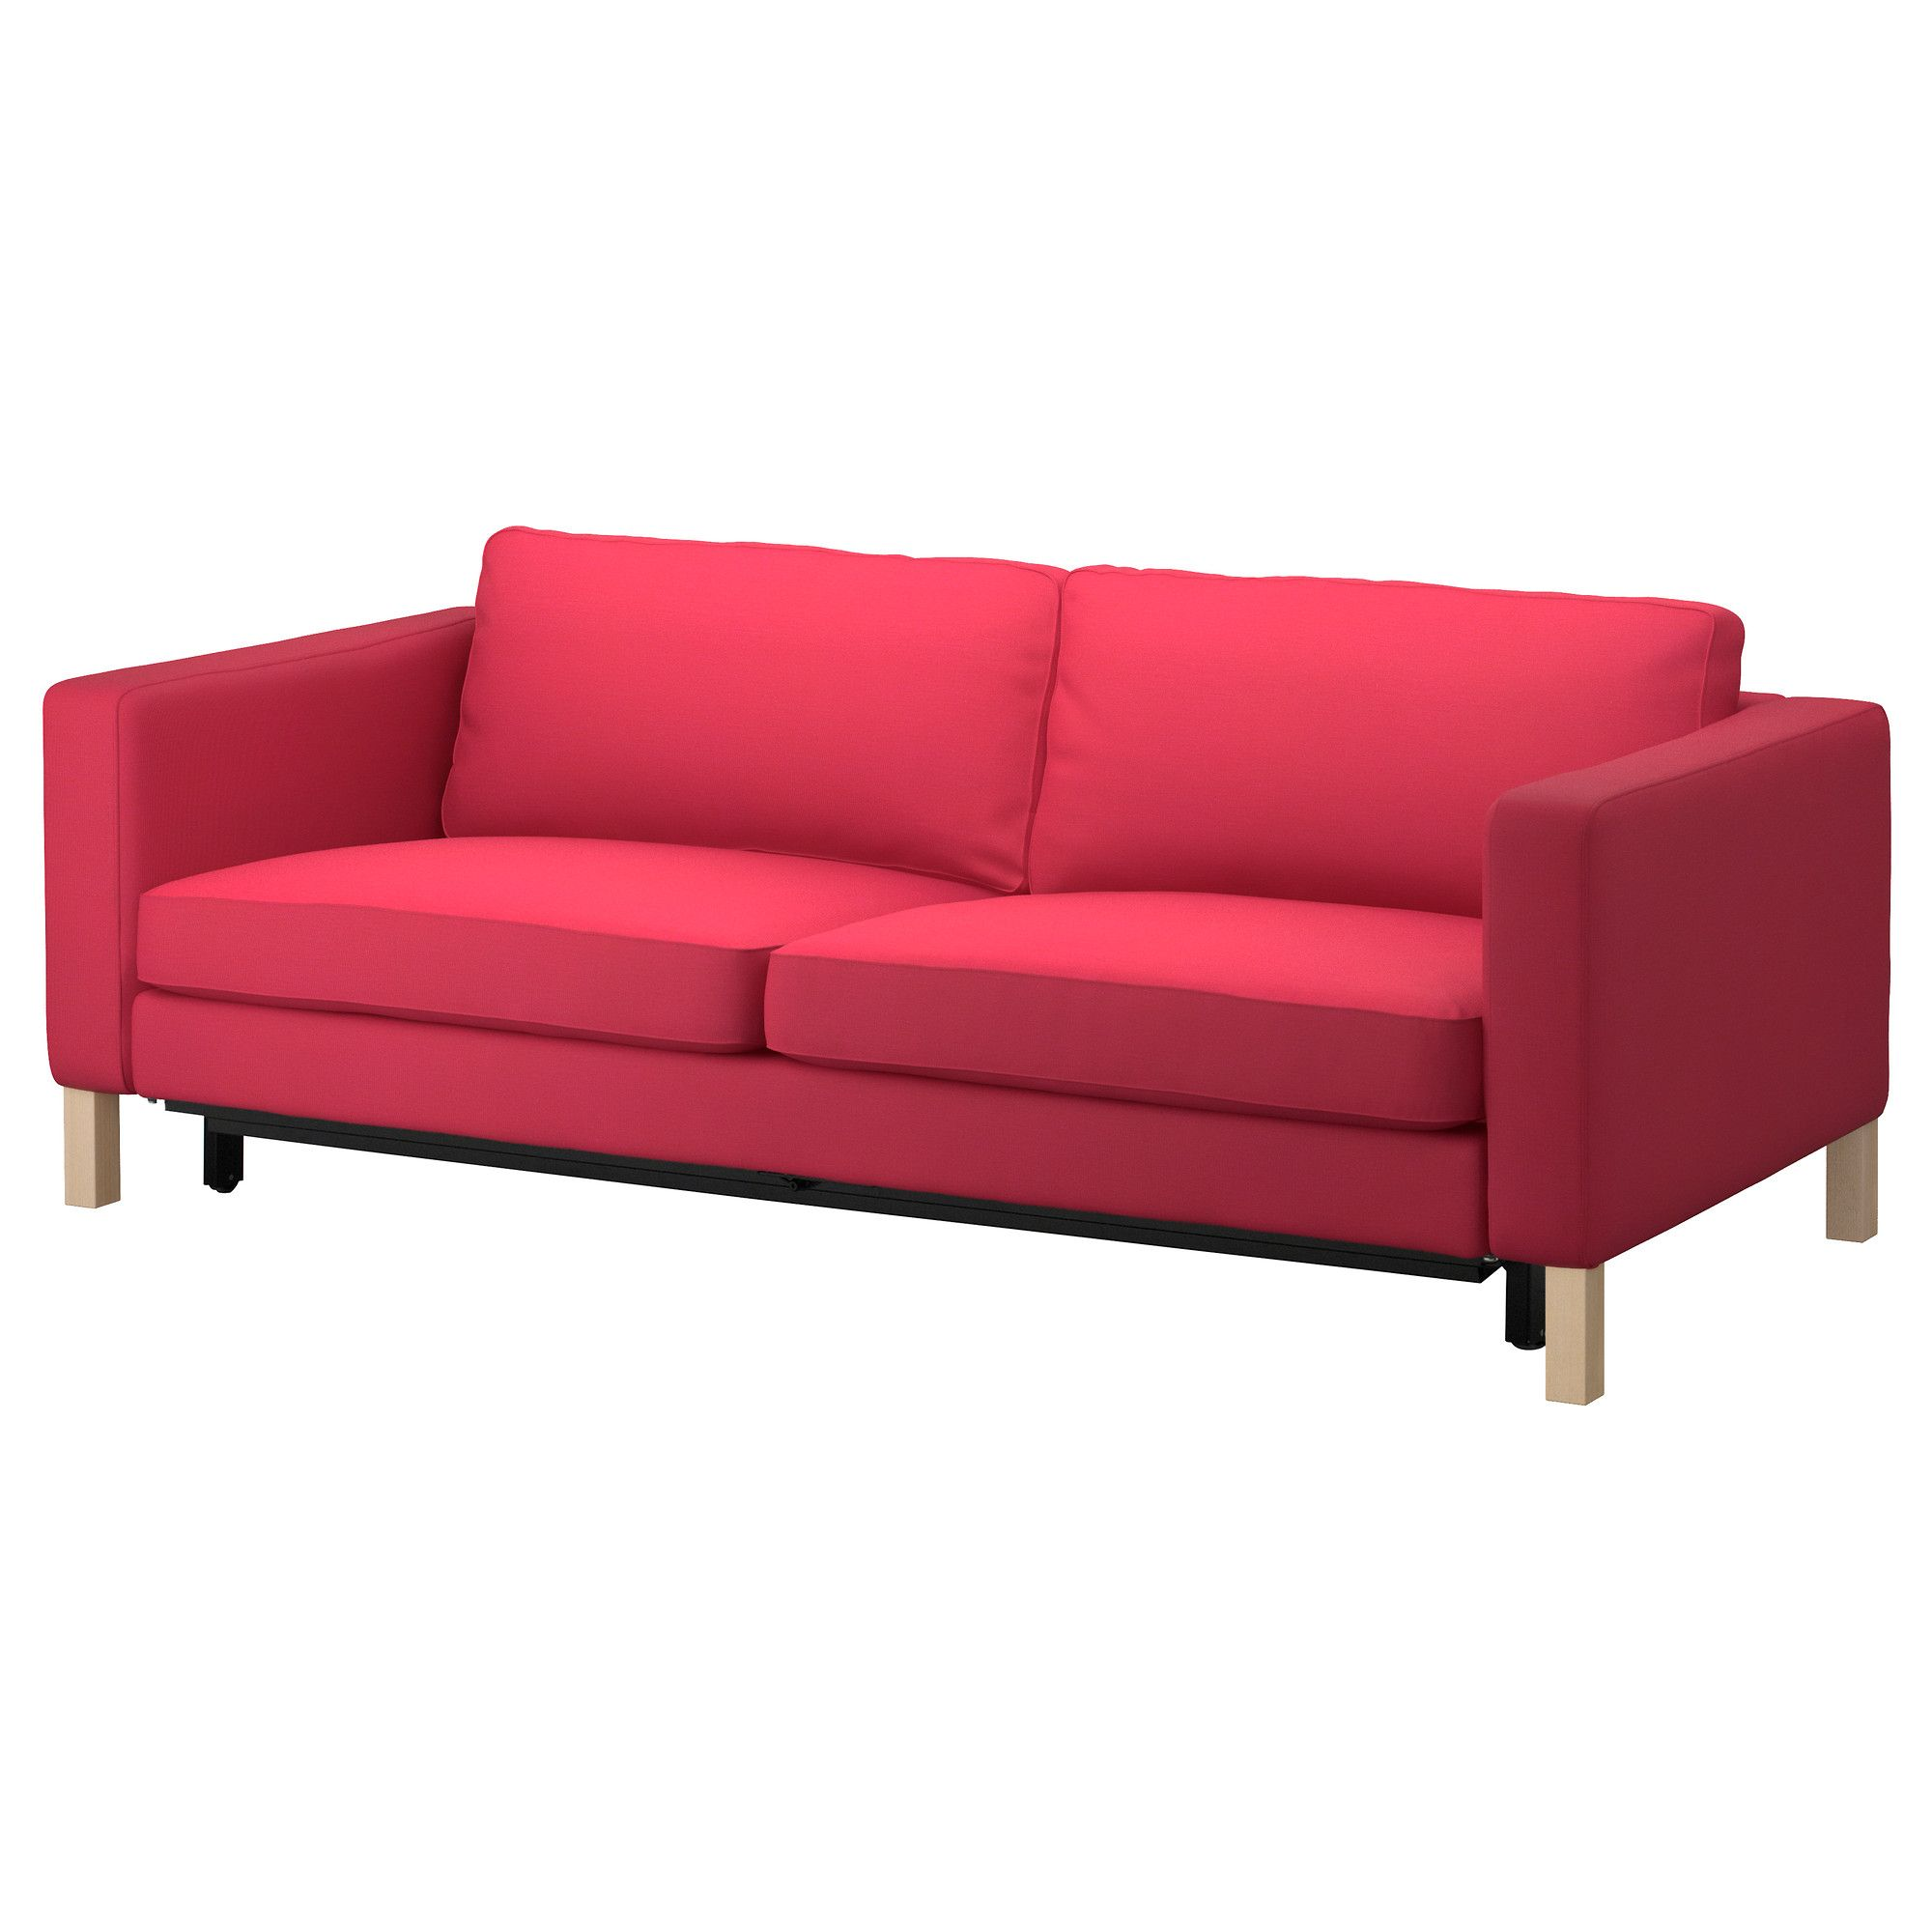 Ikea sofa bed with storage - Karlstad Sofa Bed Sivik Pink Red Ikea